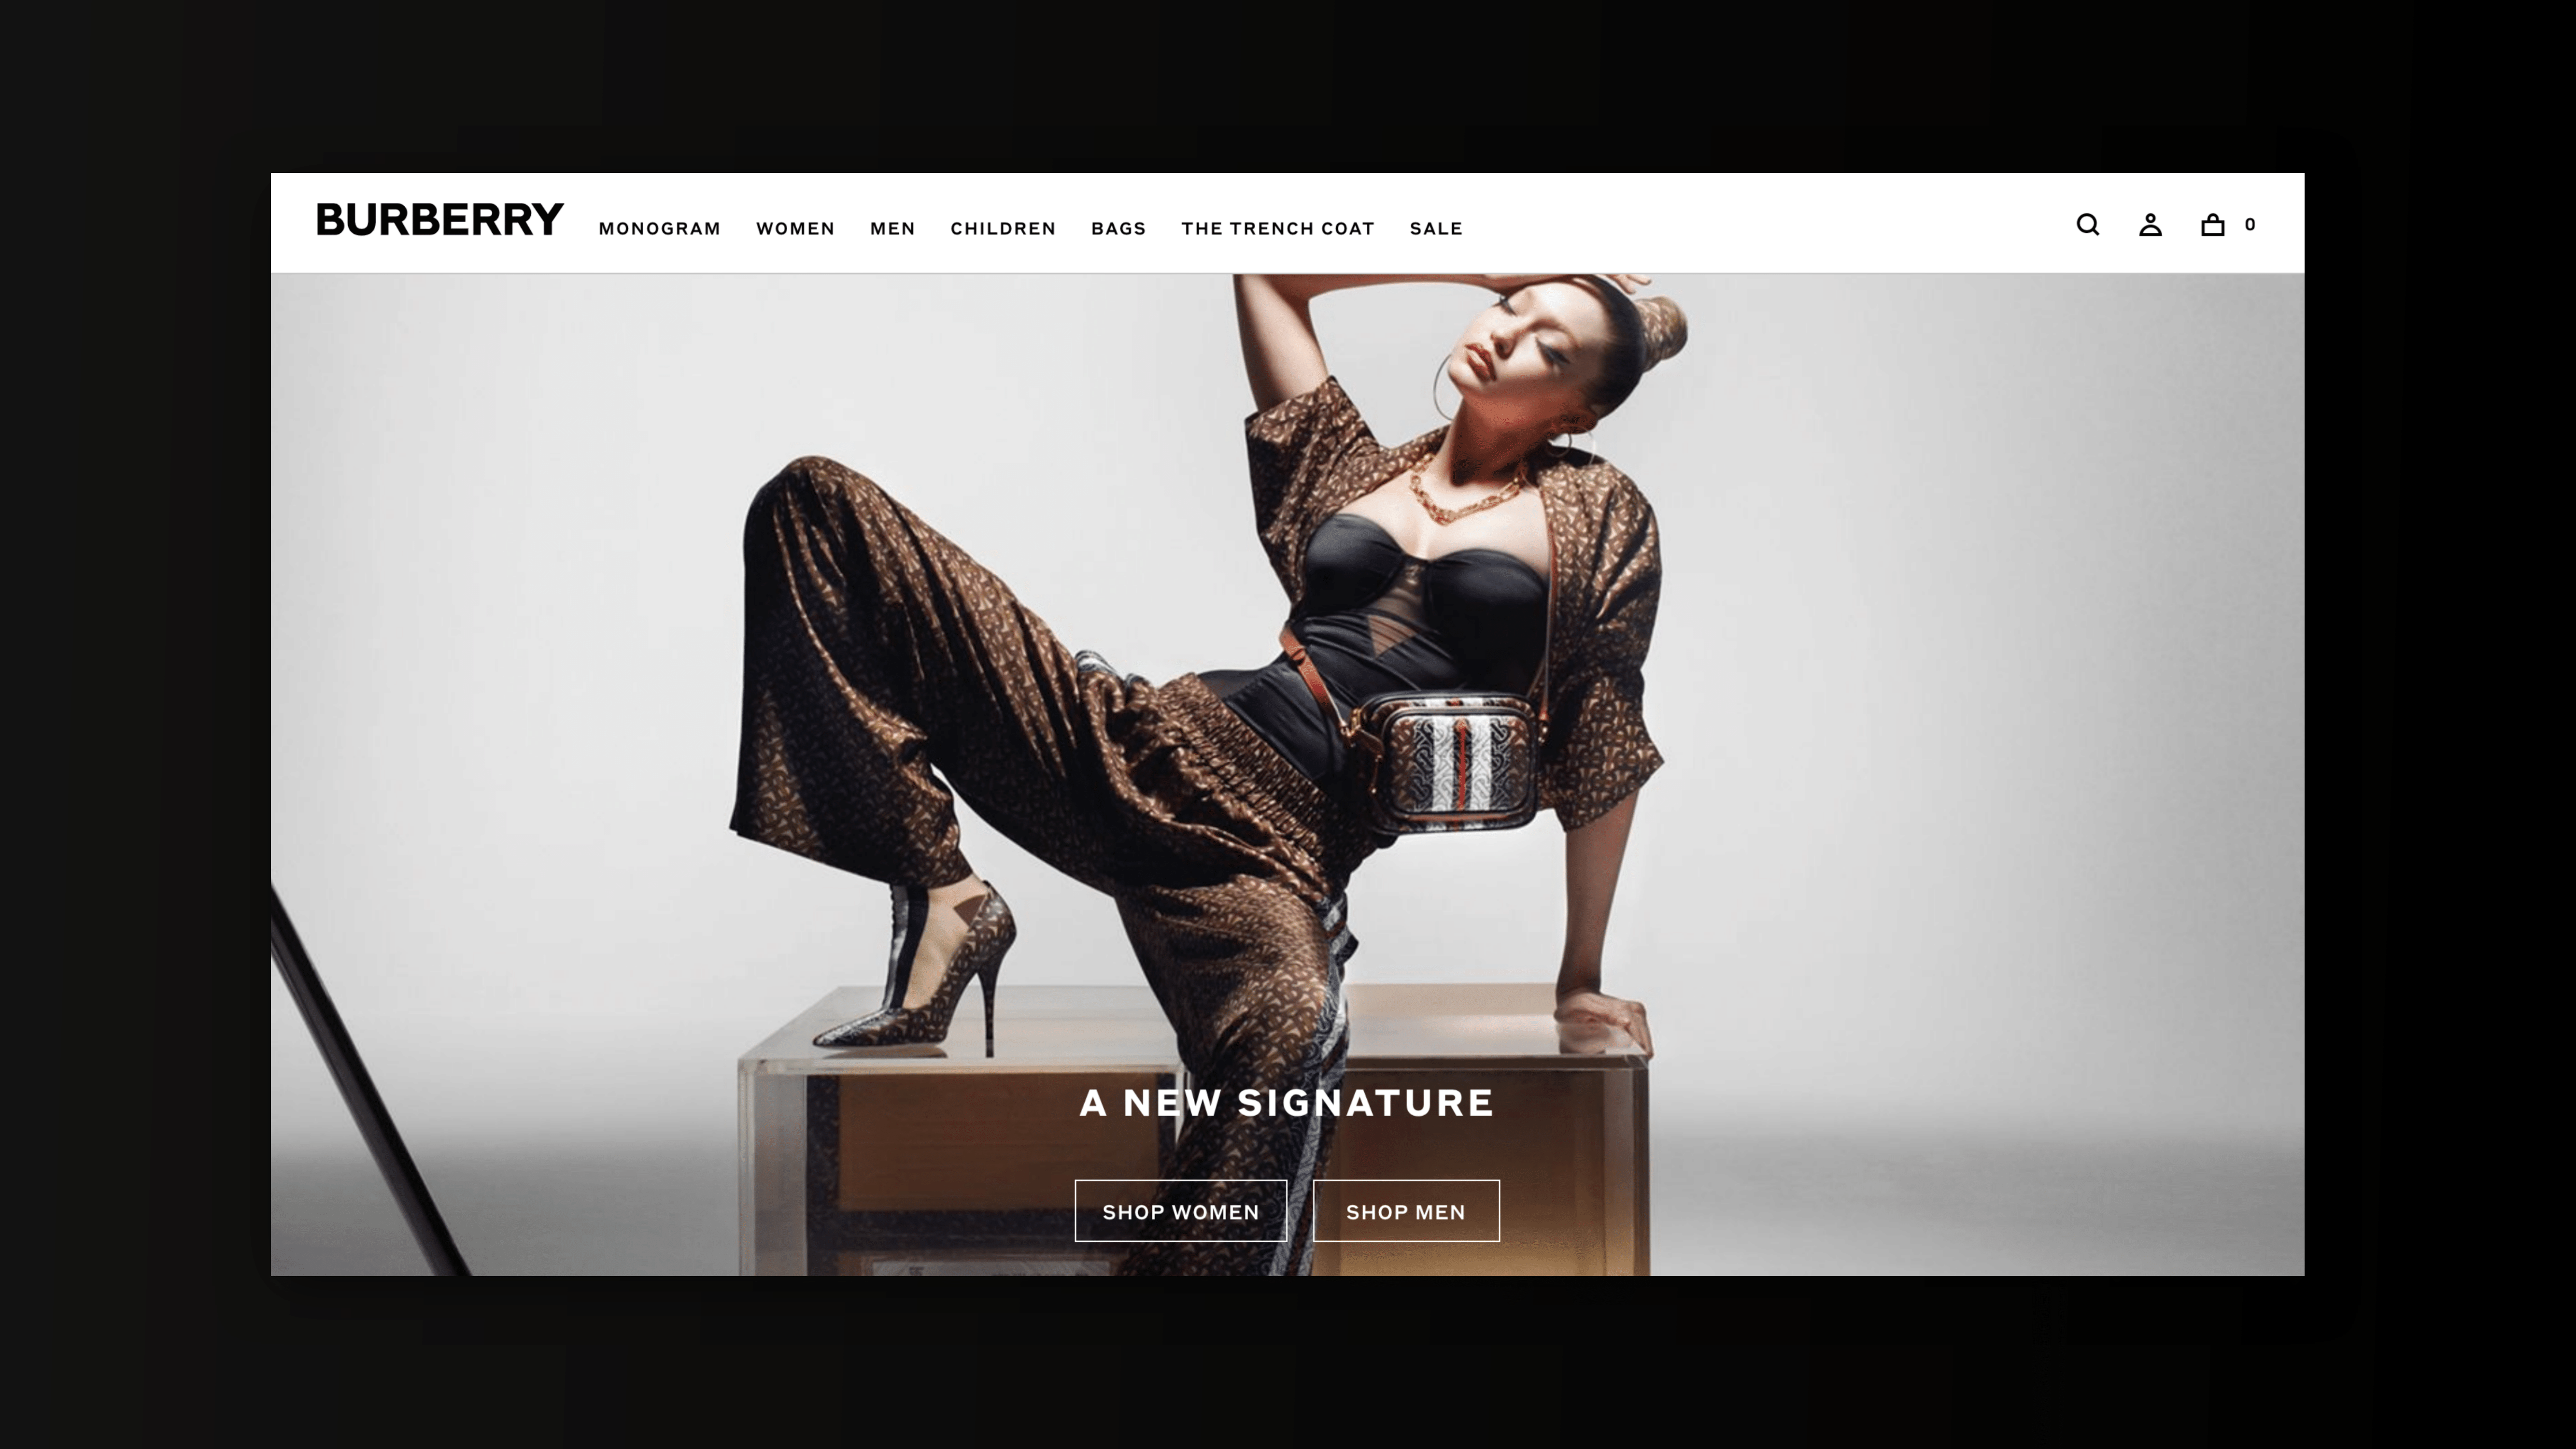 Digital agency on Gucci: Burberry's eCommerce Site: Showcasing an elegant and minimal approach